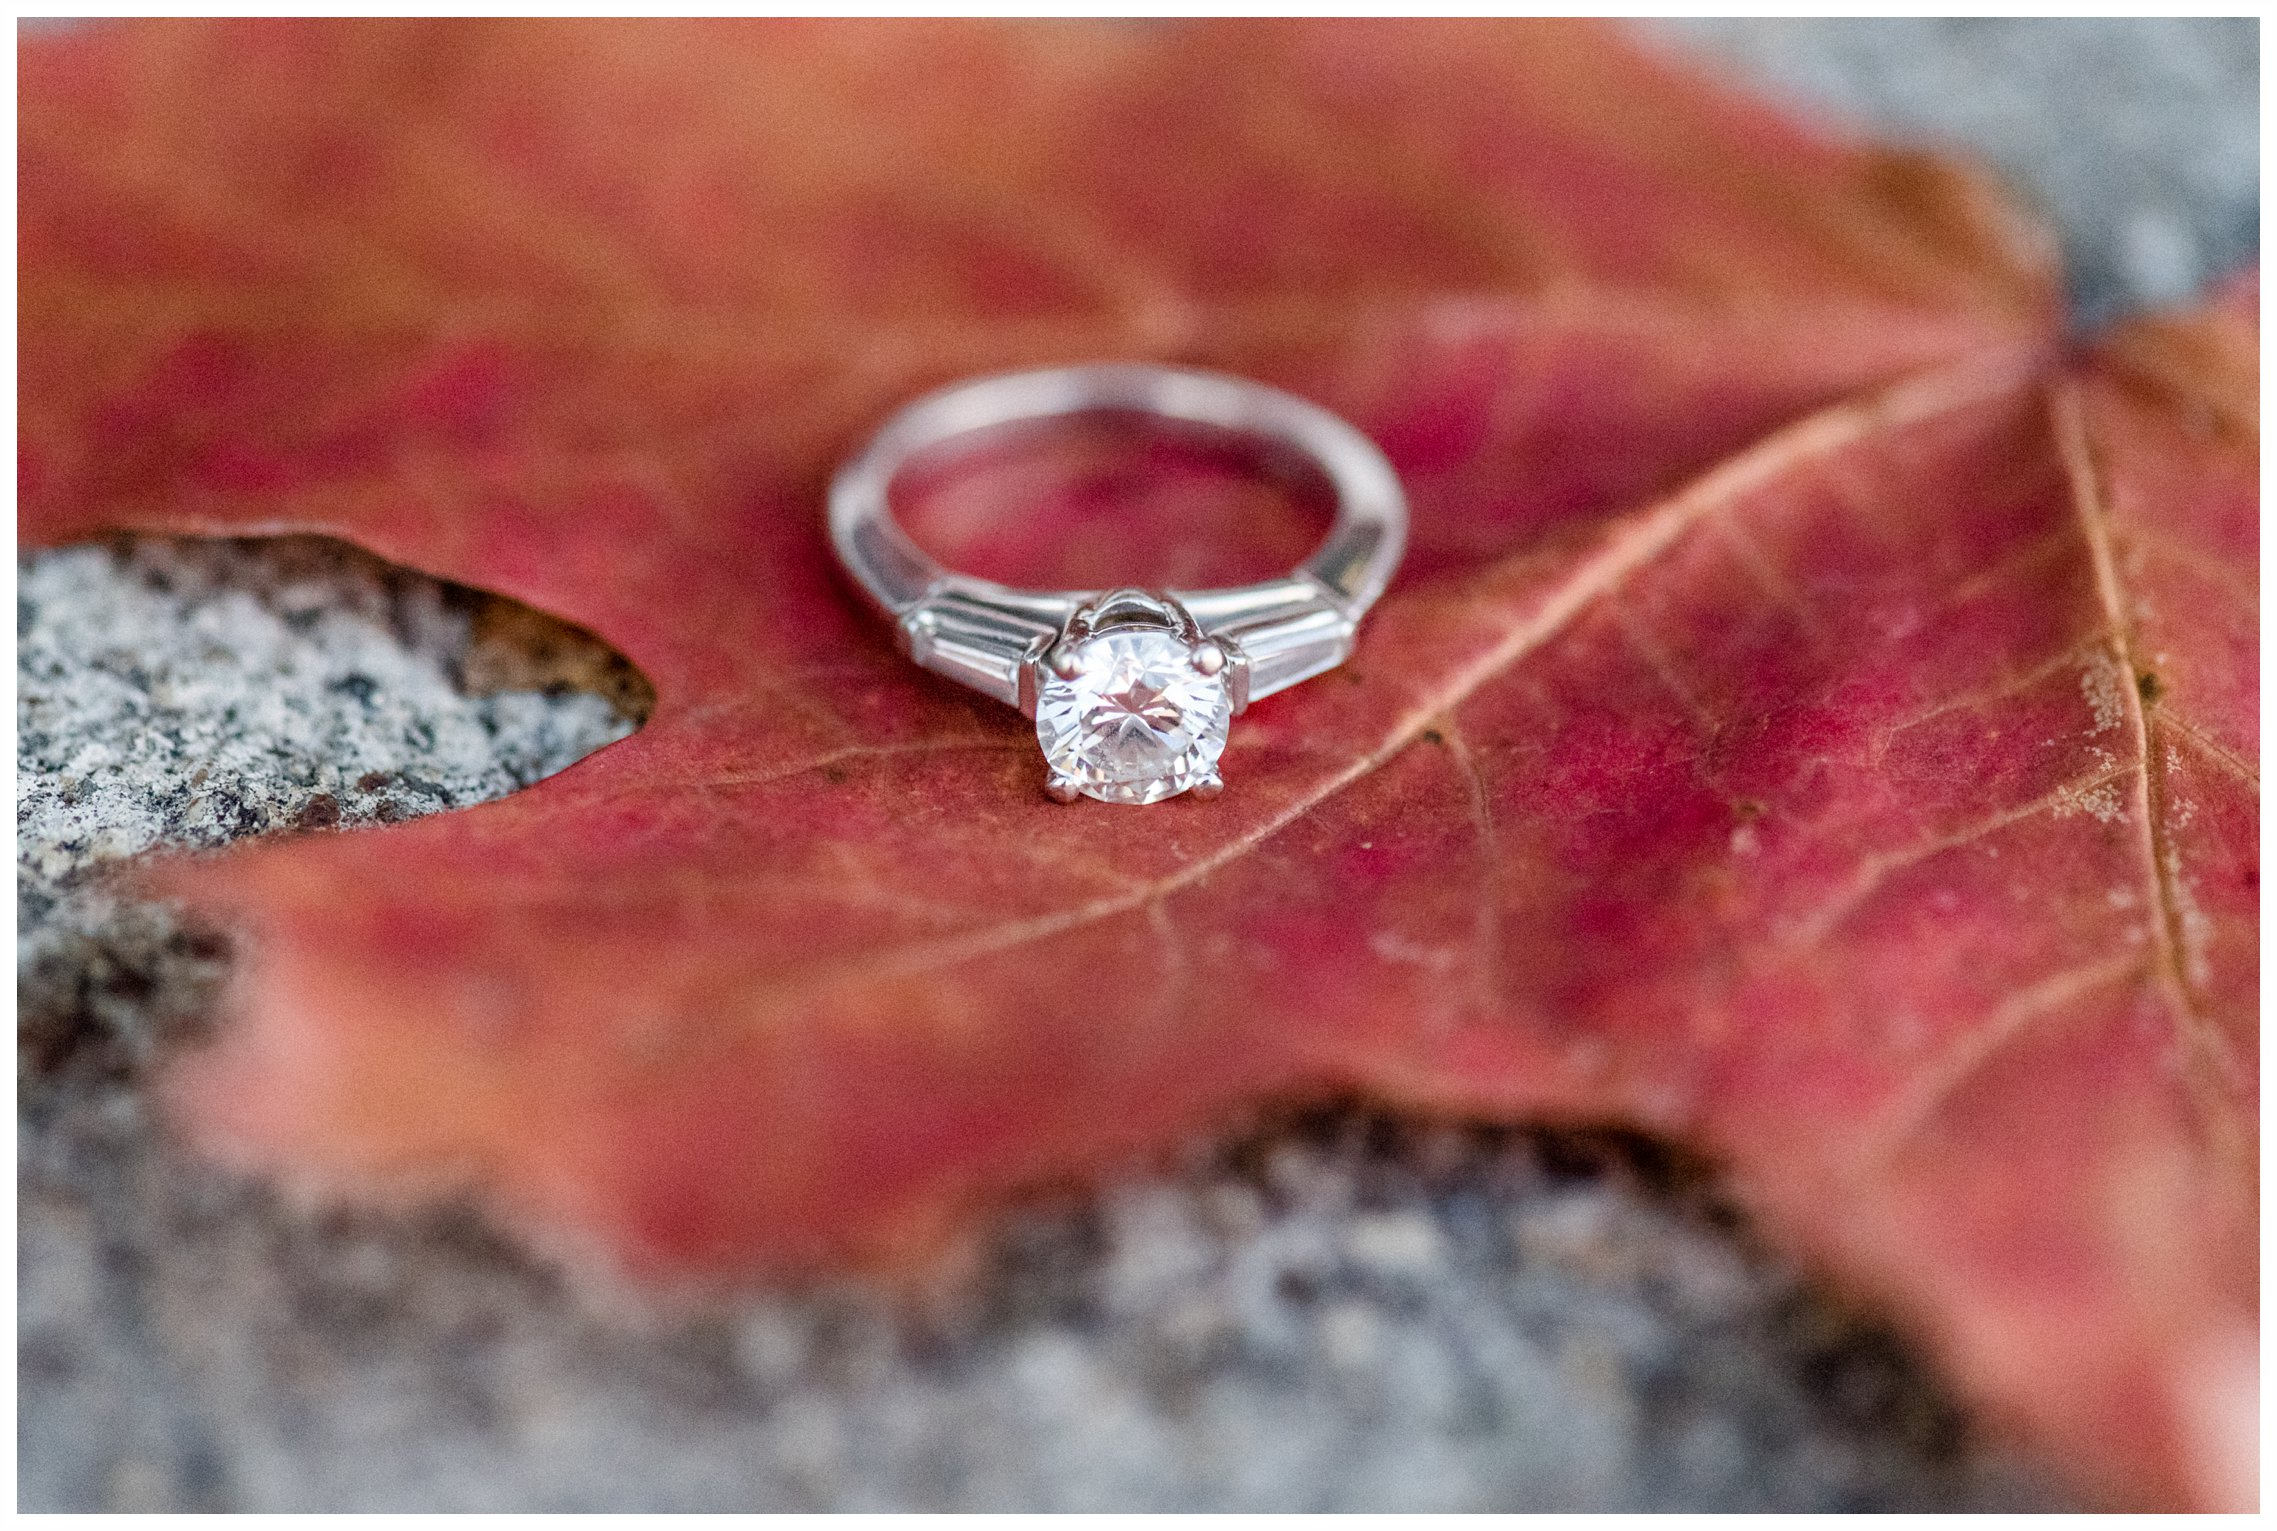 Beautiful engagement ring on a pretty leaf for engagement session at Verona Park, Verona New Jersey